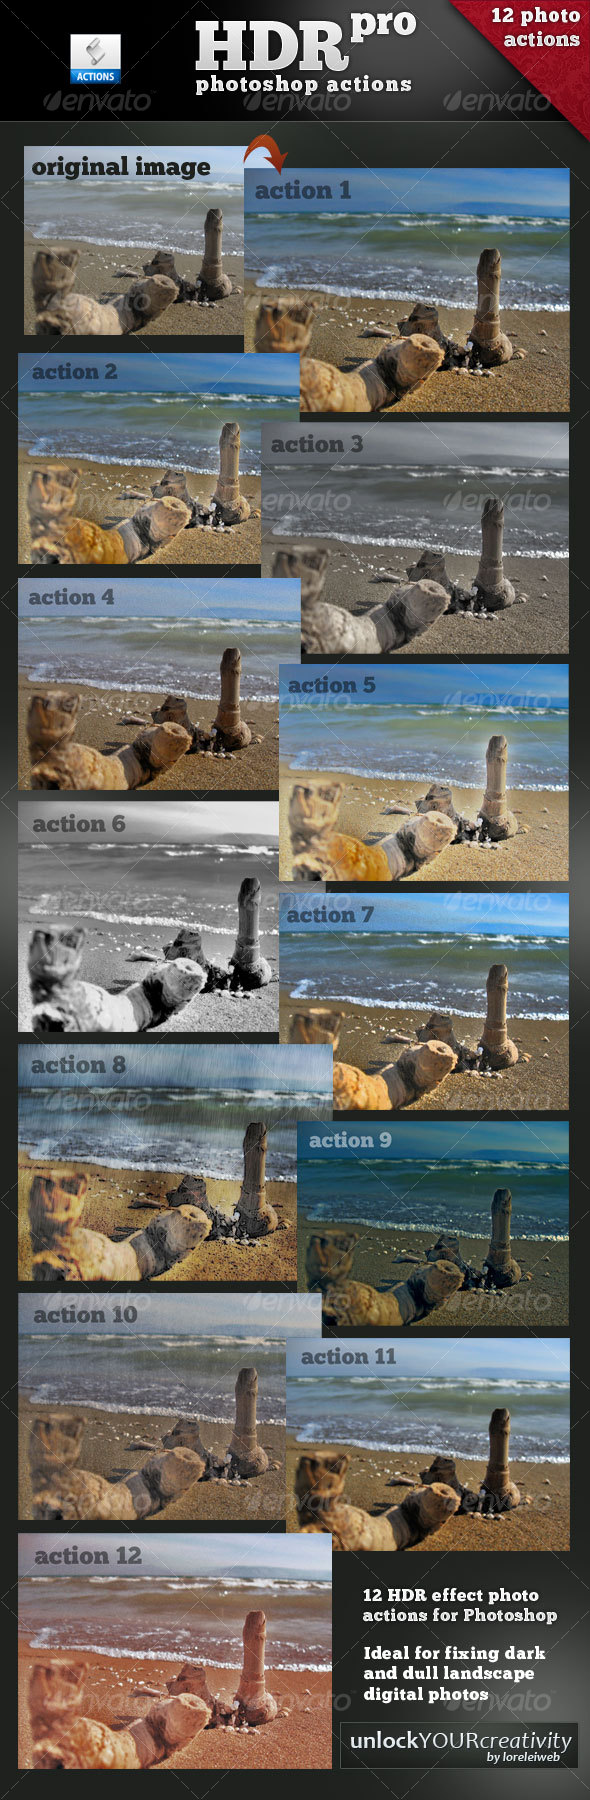 GraphicRiver 12 HDR pro Actions 75200